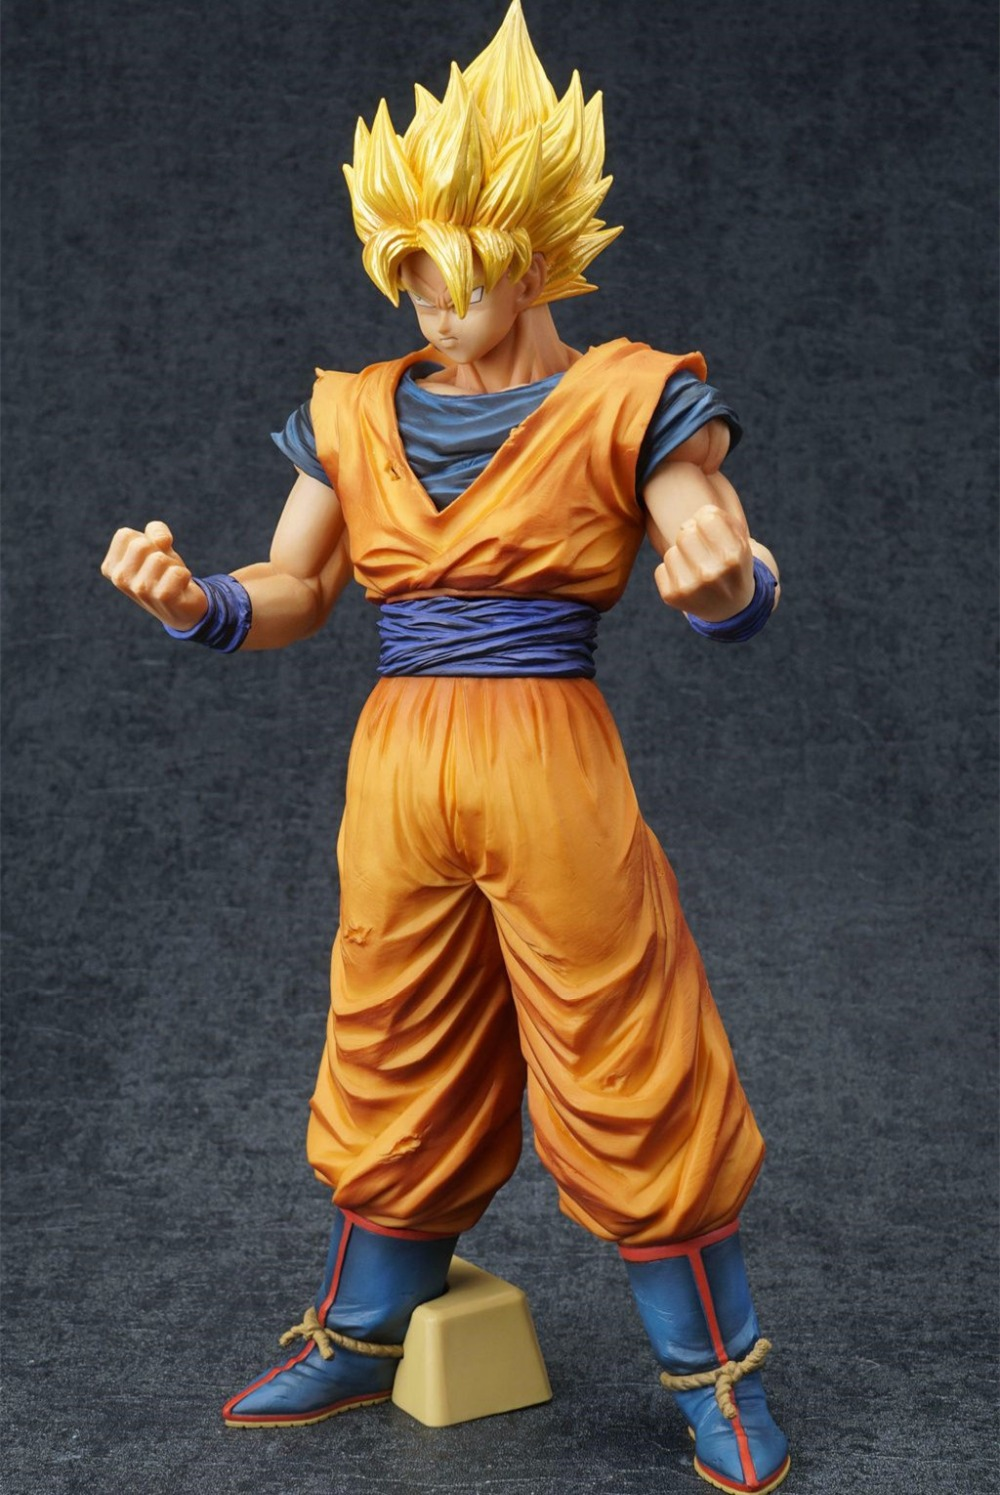 Anime Dragon Ball Z ROS Son Goku PVC Action Figure Collectible Model Kids Toys Doll 32CM Large Size Figure Toy dragon ball super toy son goku action figure anime super vegeta pop model doll pvc collection toys for children christmas gifts